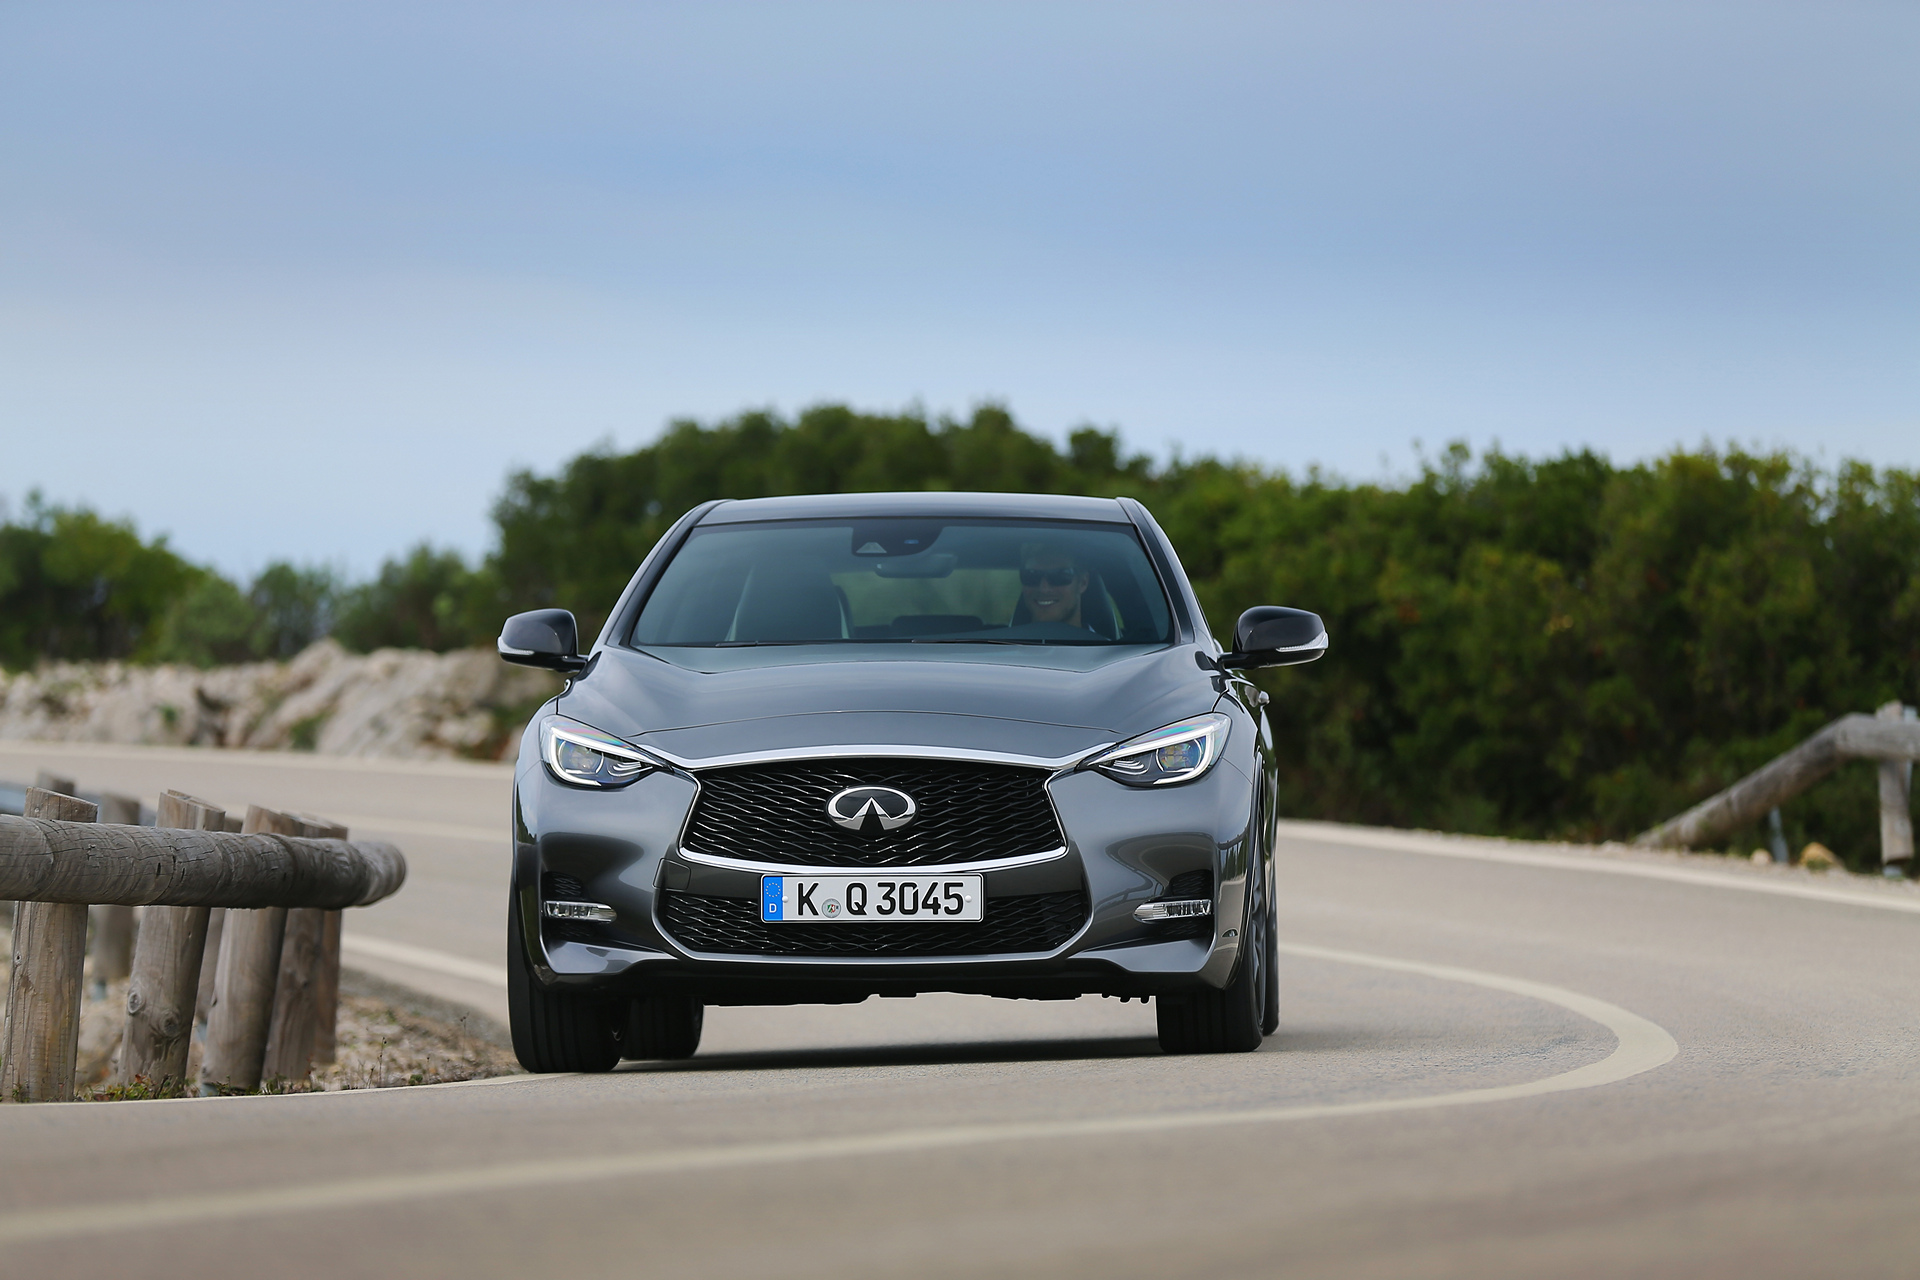 2017 Infiniti QX30 S © Nissan Motor Co., Ltd.